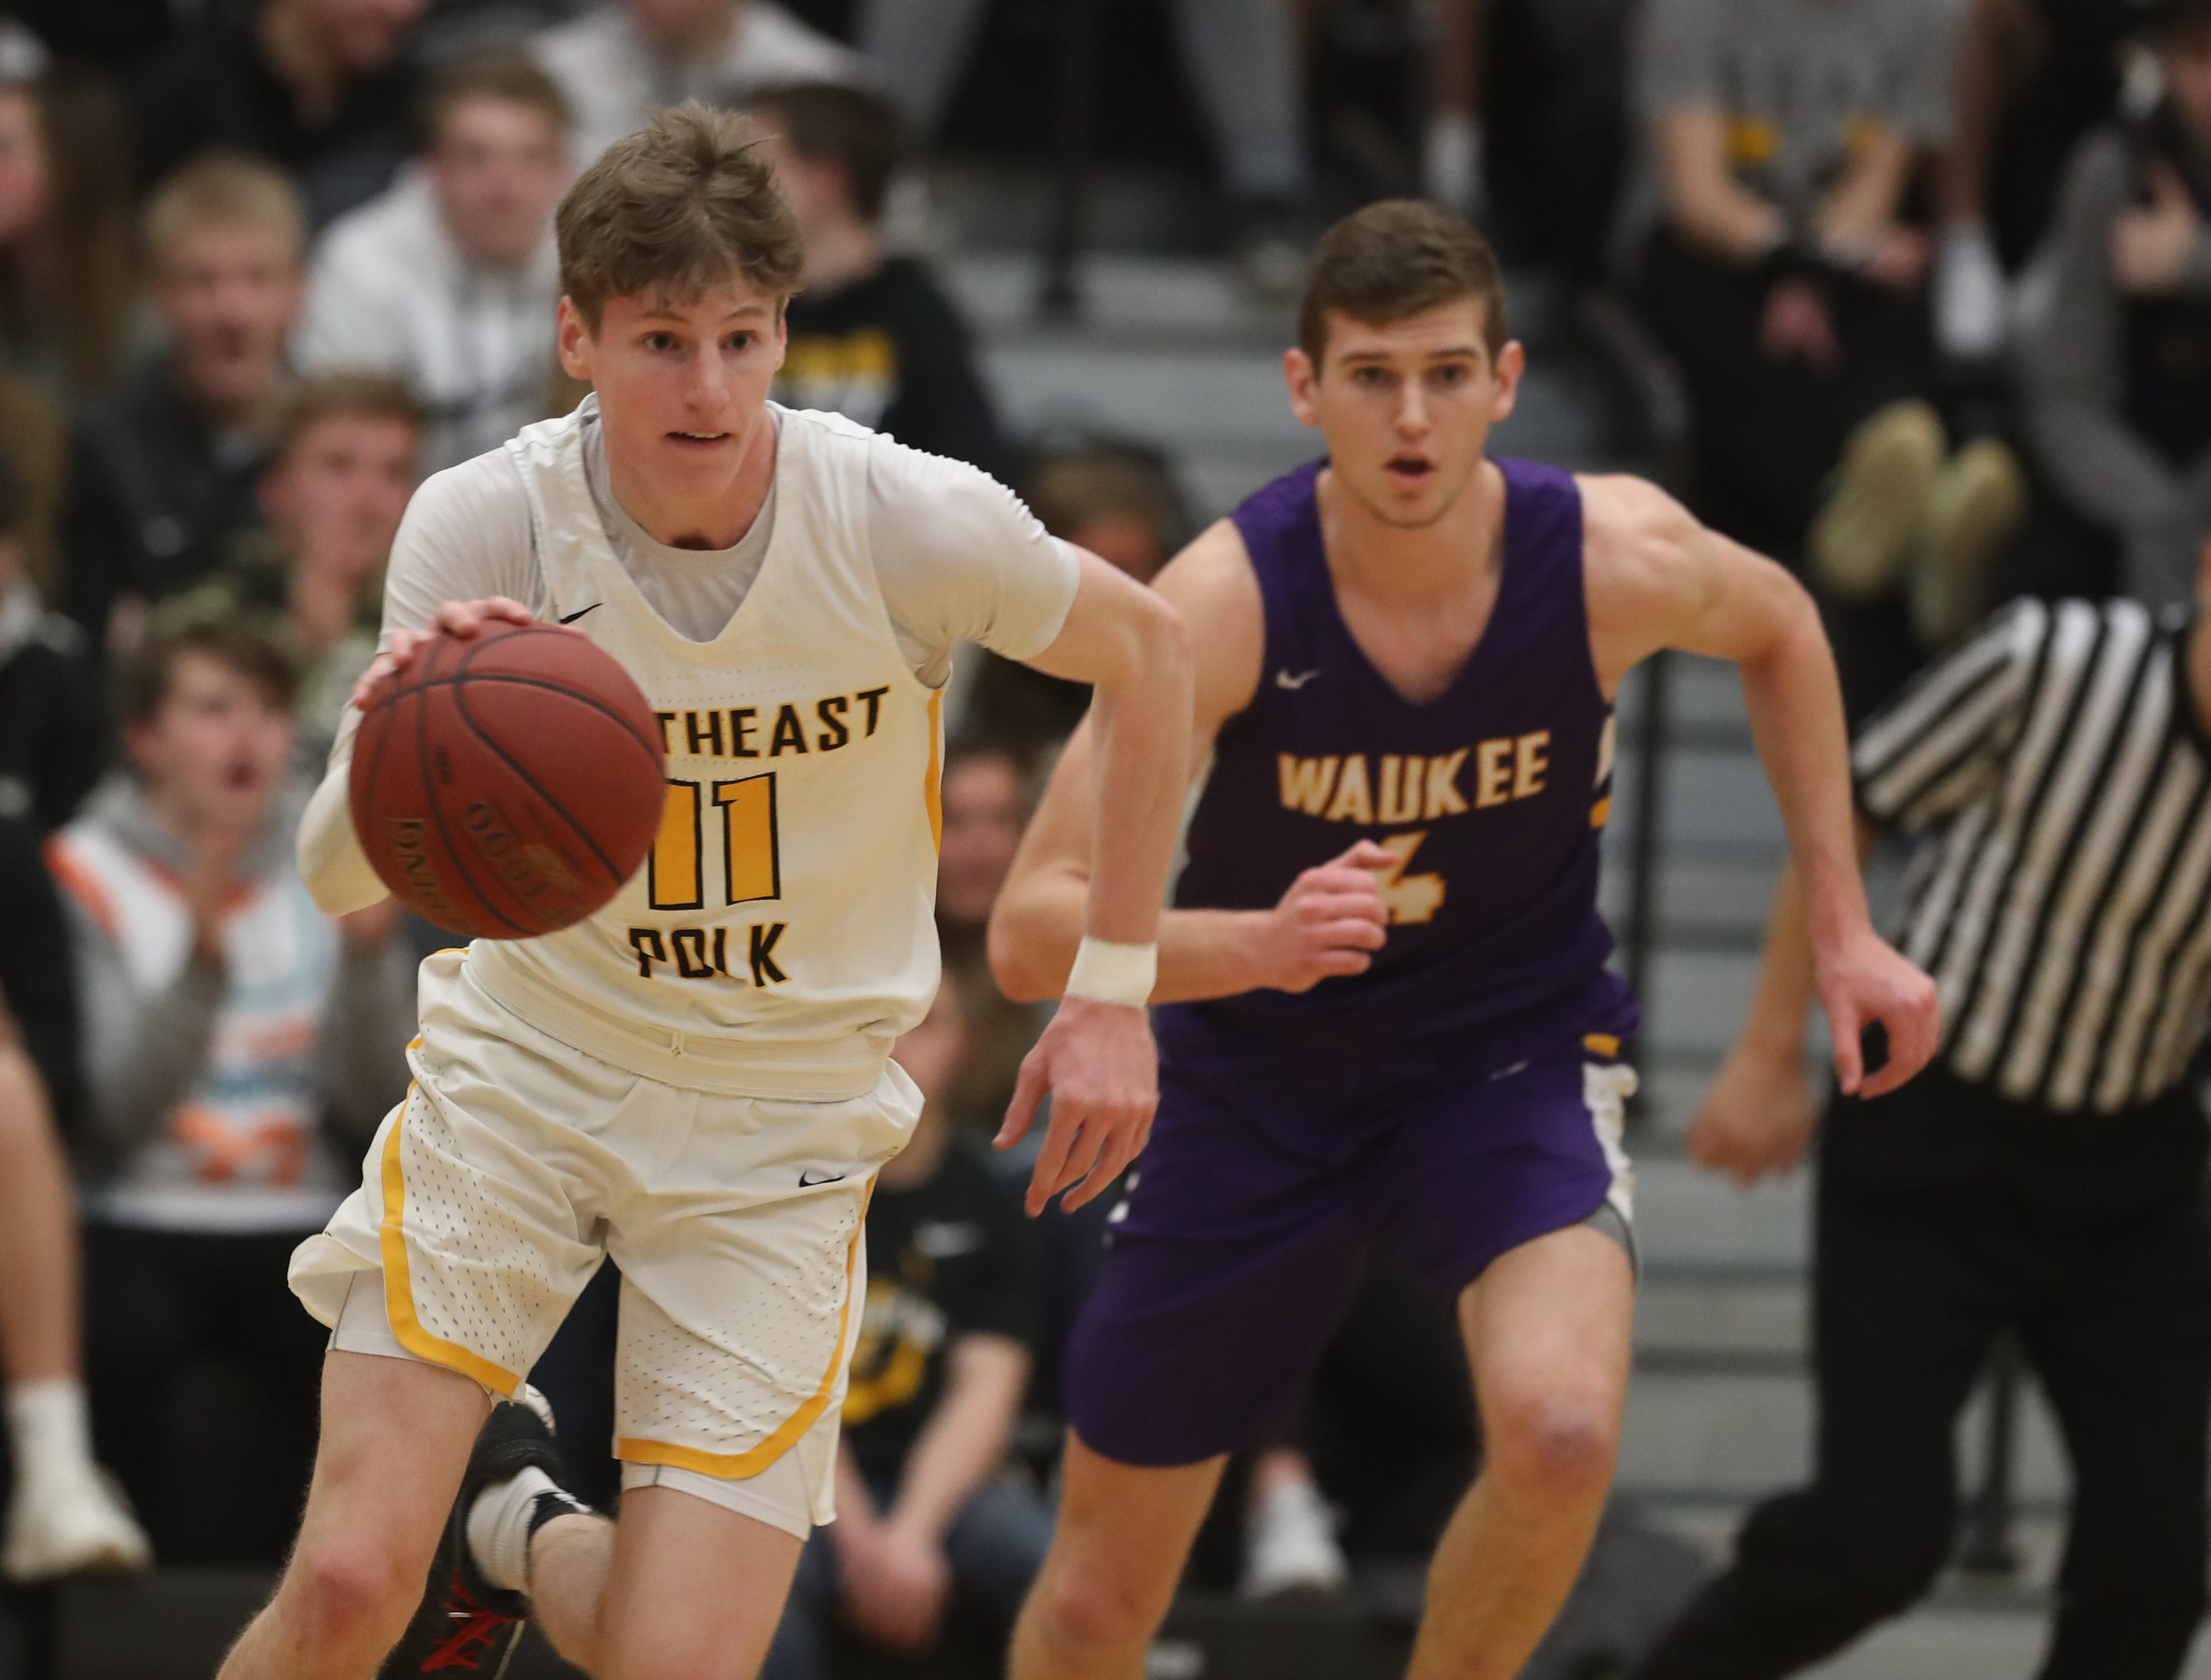 Southeast Polk Rams' Sam Glenn (11) dribbles up the court against the Waukee Warriors during a game on Feb. 1, 2019 at Southeast Polk High School. Waukee won the game 65 to 48.